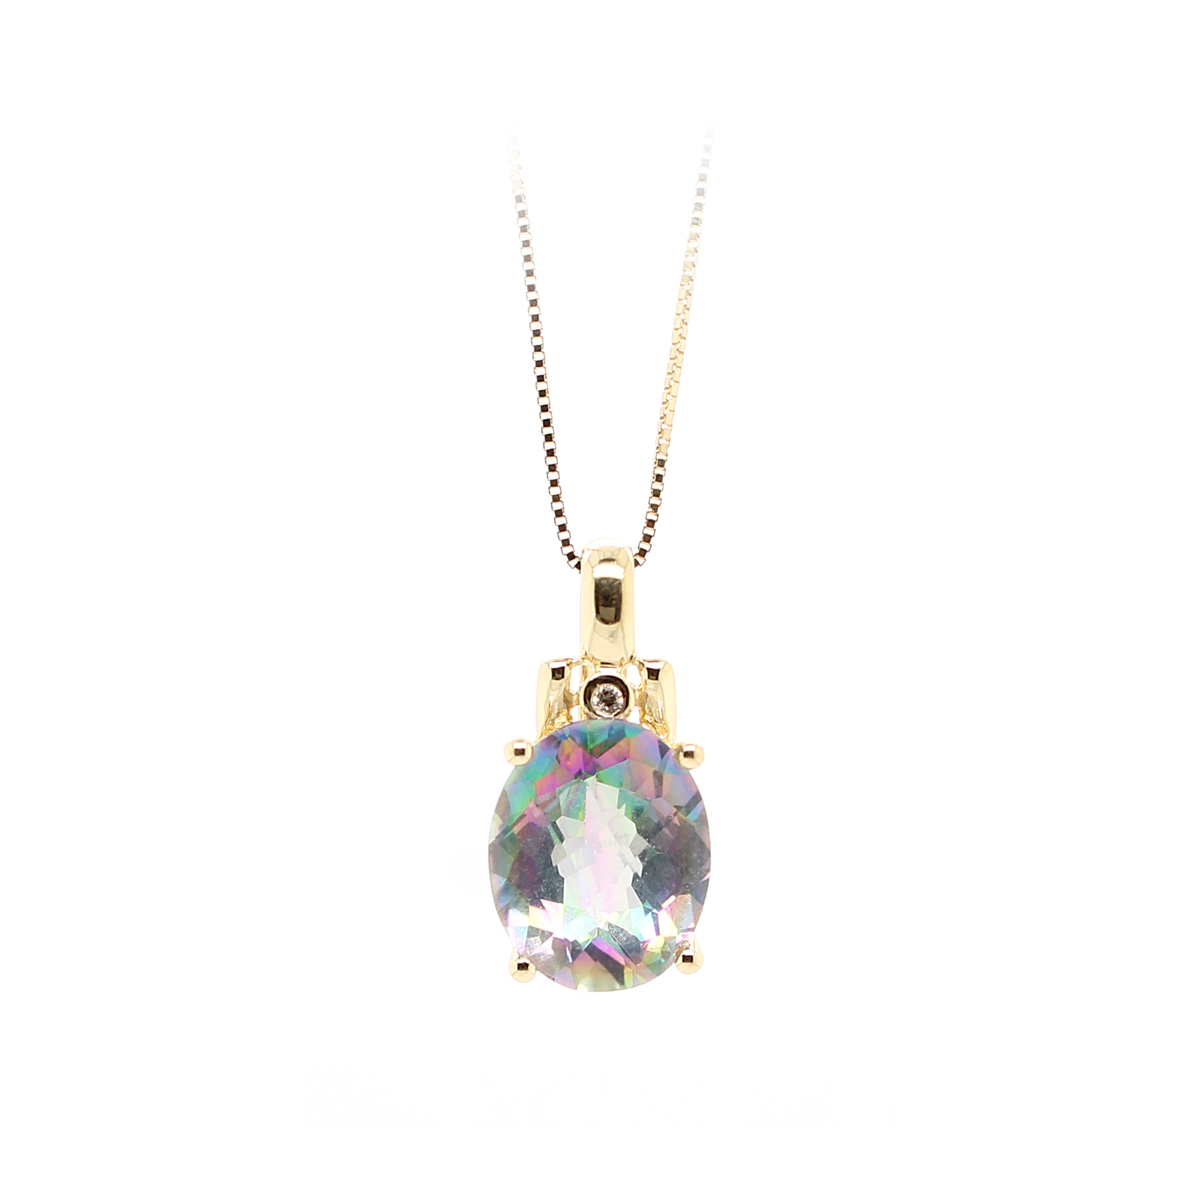 Vintage 14 Karat Gold Enhanced Mystic Topaz Pendant Necklace